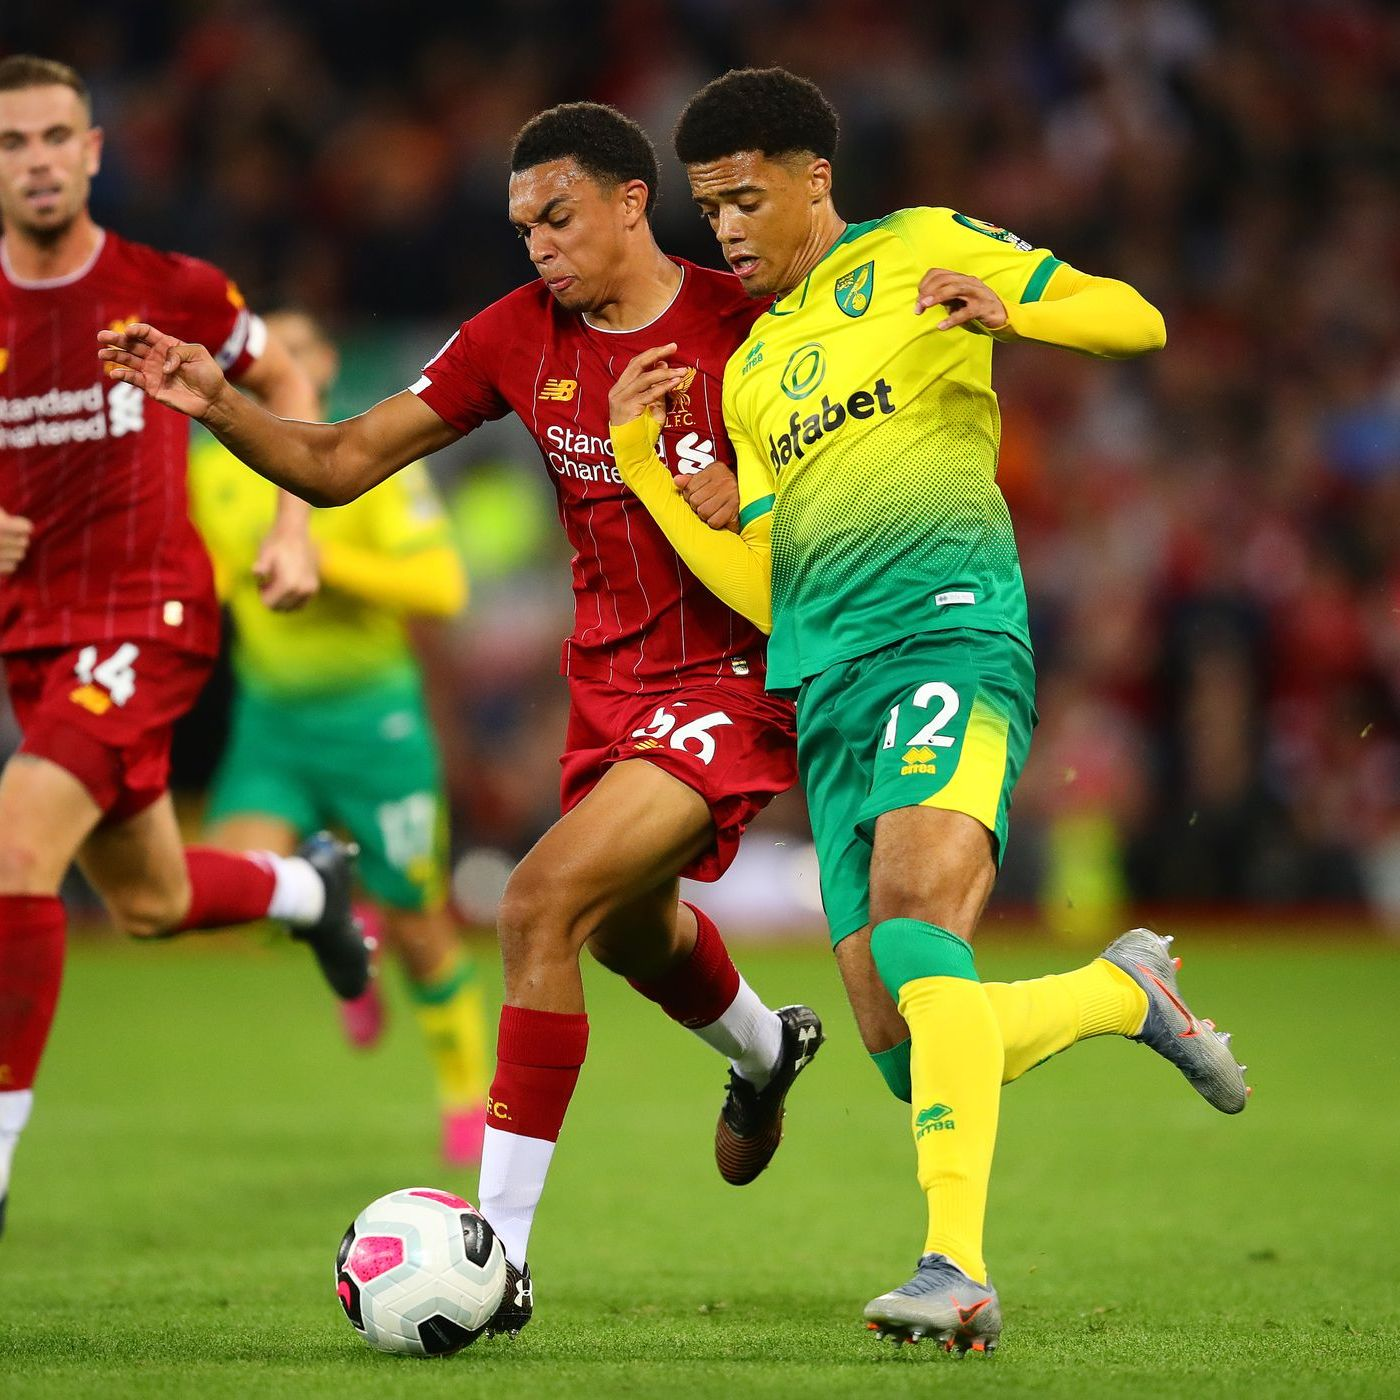 Blood Red: Jamal Lewis transfer latest | Liverpool dominate Premier League awards